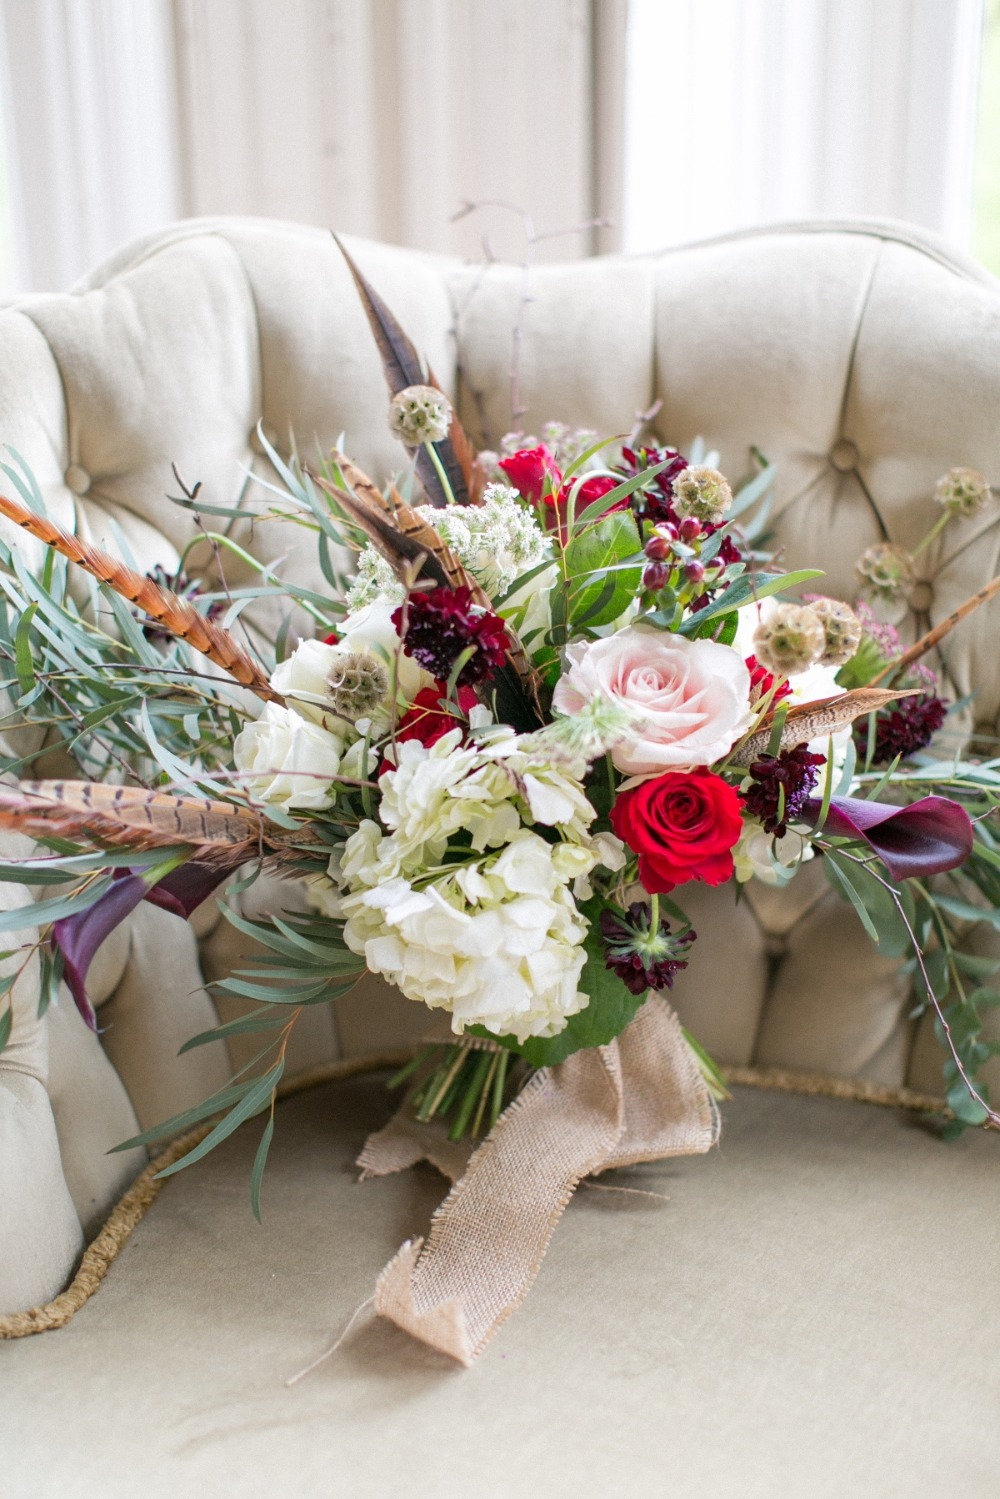 Winter wedding bouquet with feathers